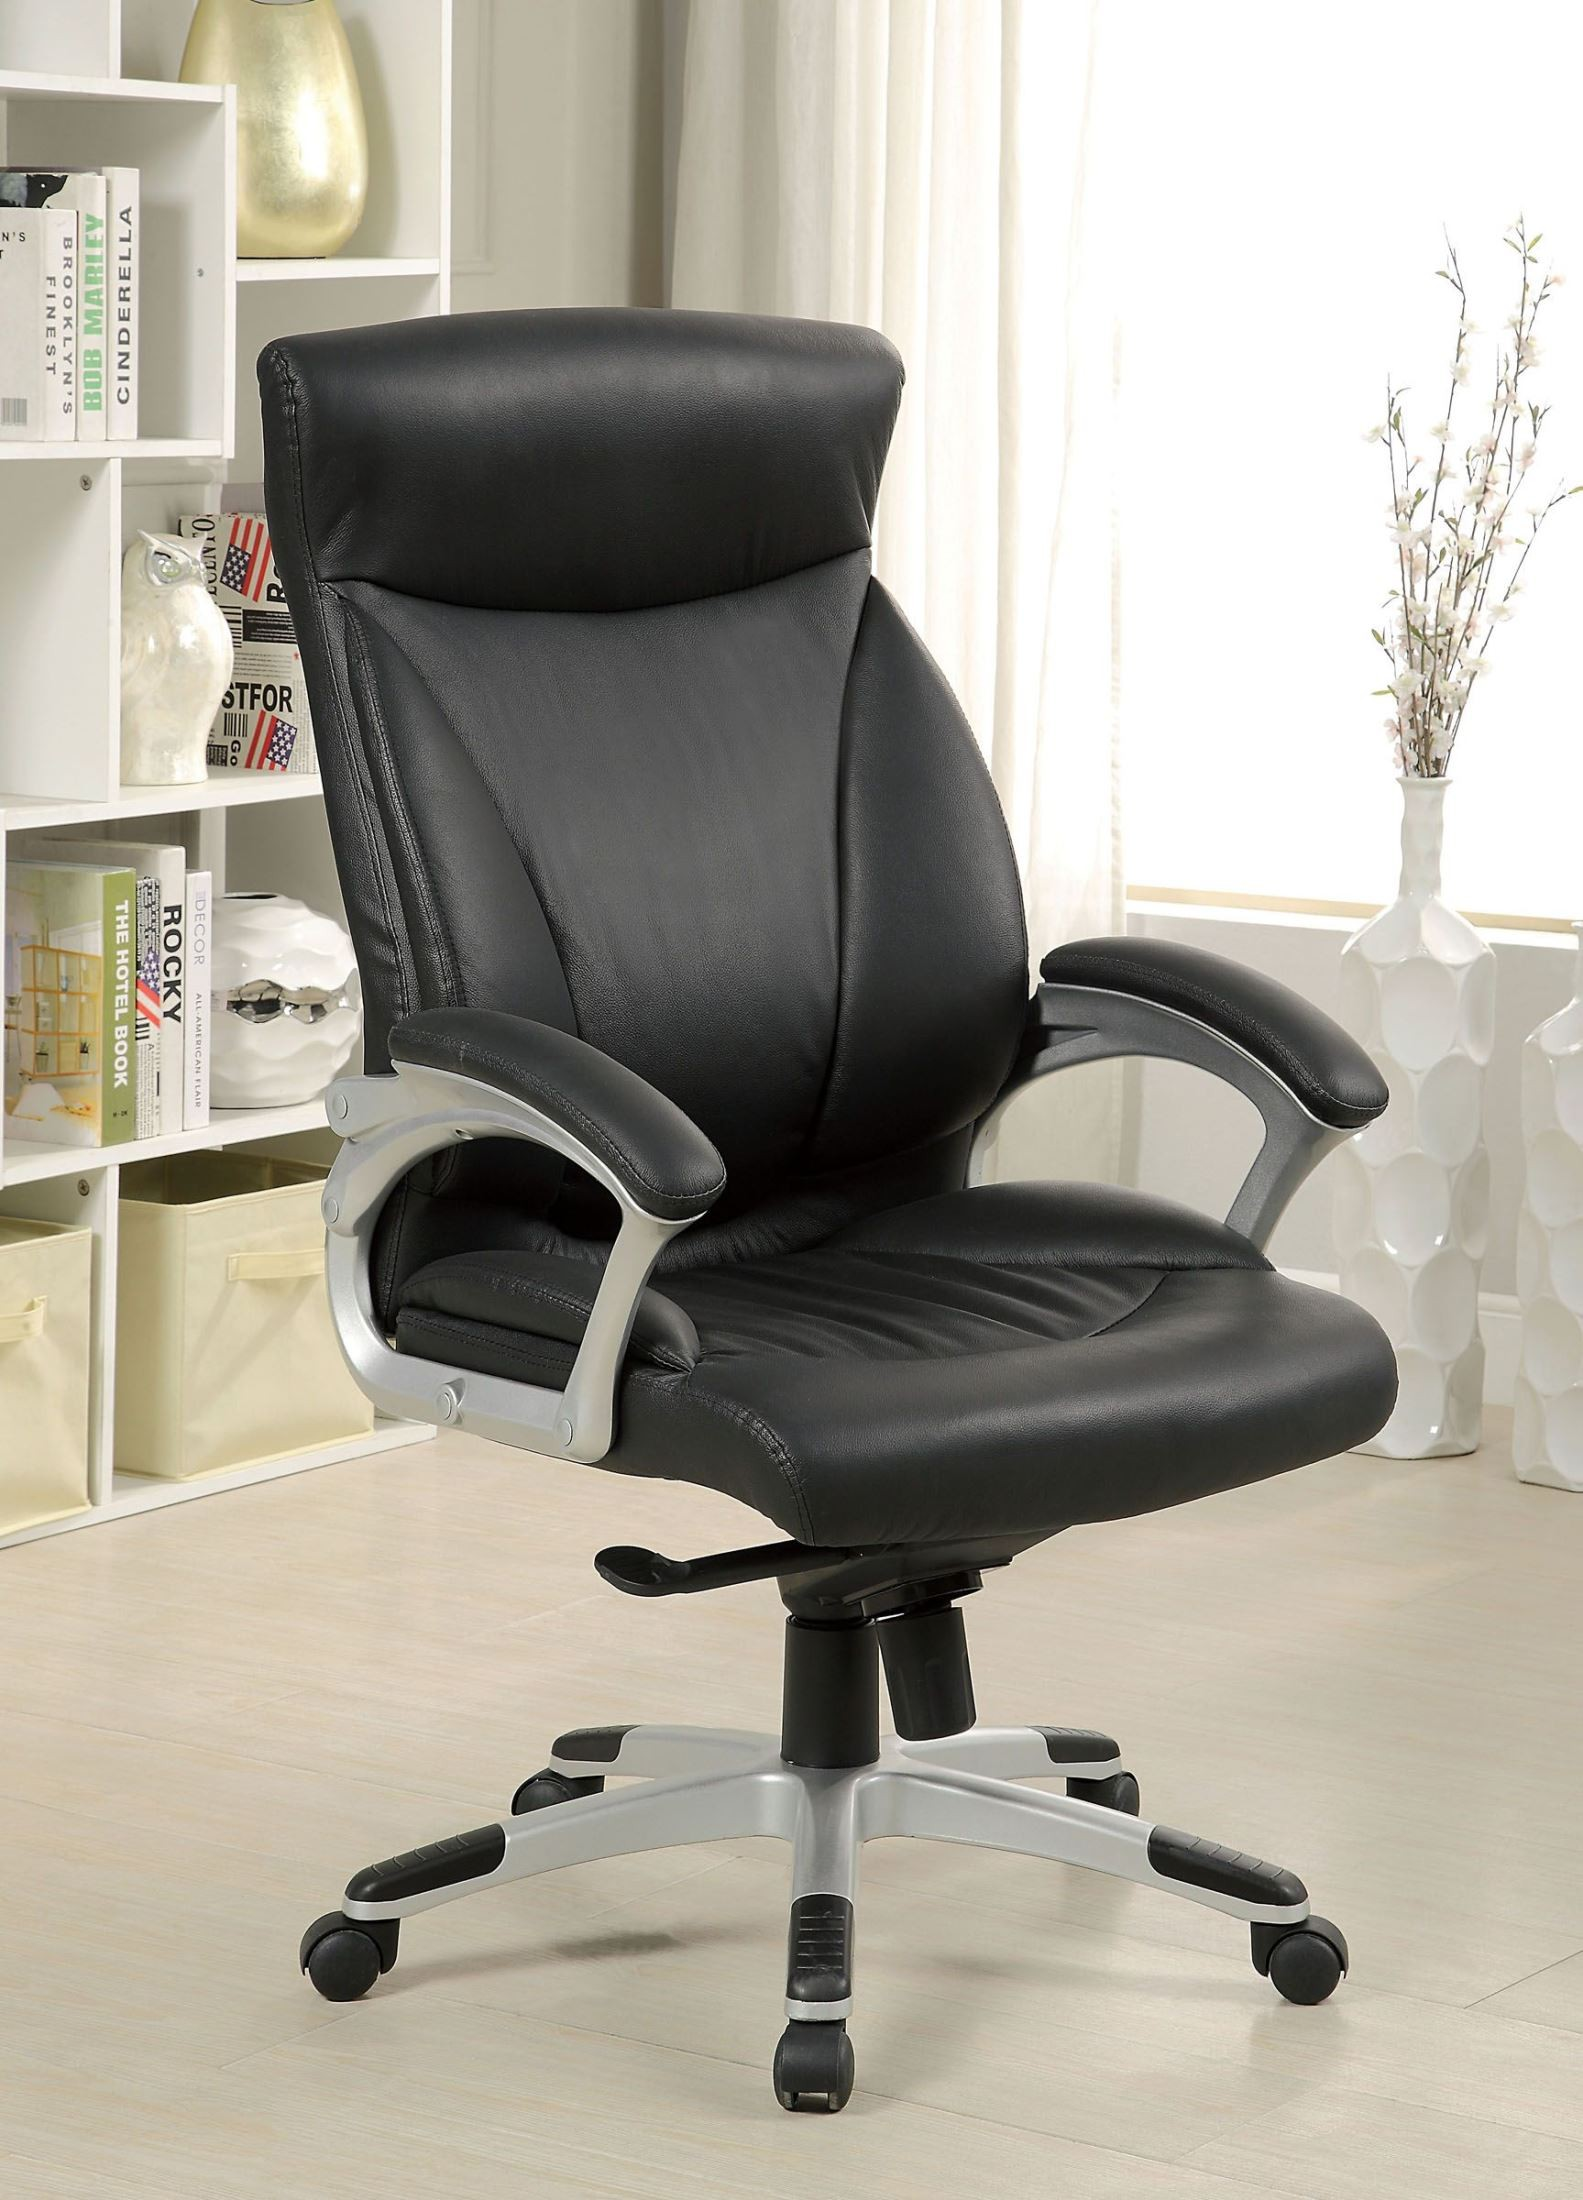 Top Grain Leather Office Chair Orsik Top Grain Leather Match Office Chair From Furniture